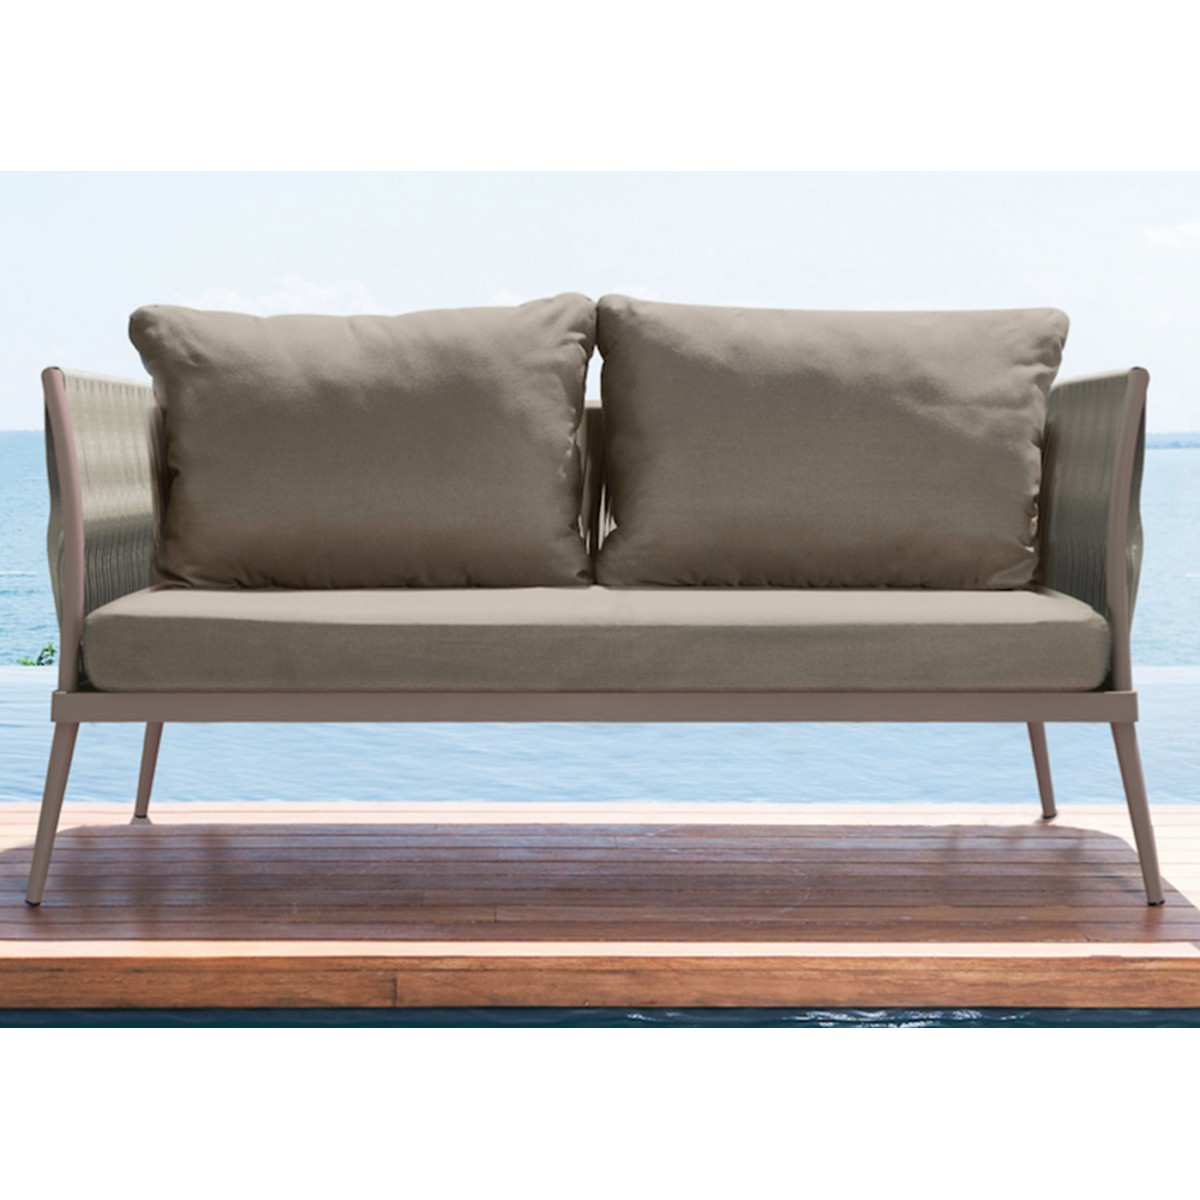 ... › Canape sofa 3 places design interieur exterieur elite talenti